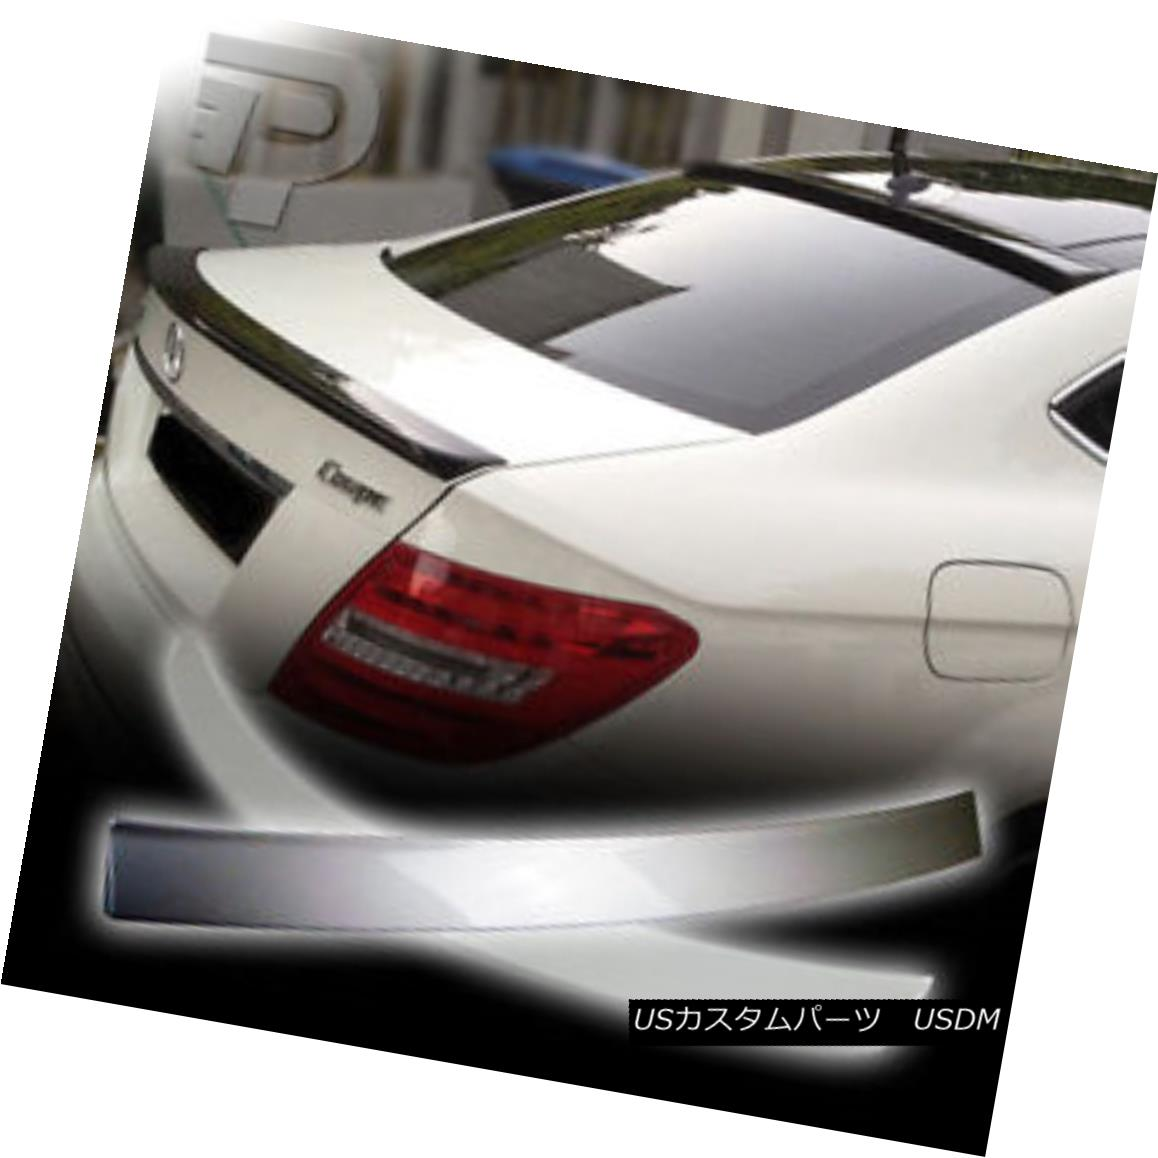 エアロパーツ PAINTED Mercedes BENZ C204 OE ROOF WING & A TYPE BOOT TRUNK SPOILER COUPE 2DR ▼ ペイントされたメルセデスベンツC204 OEルーフウィング& TYPE BOOT TRUNK SPOILER COUPE 2DR?